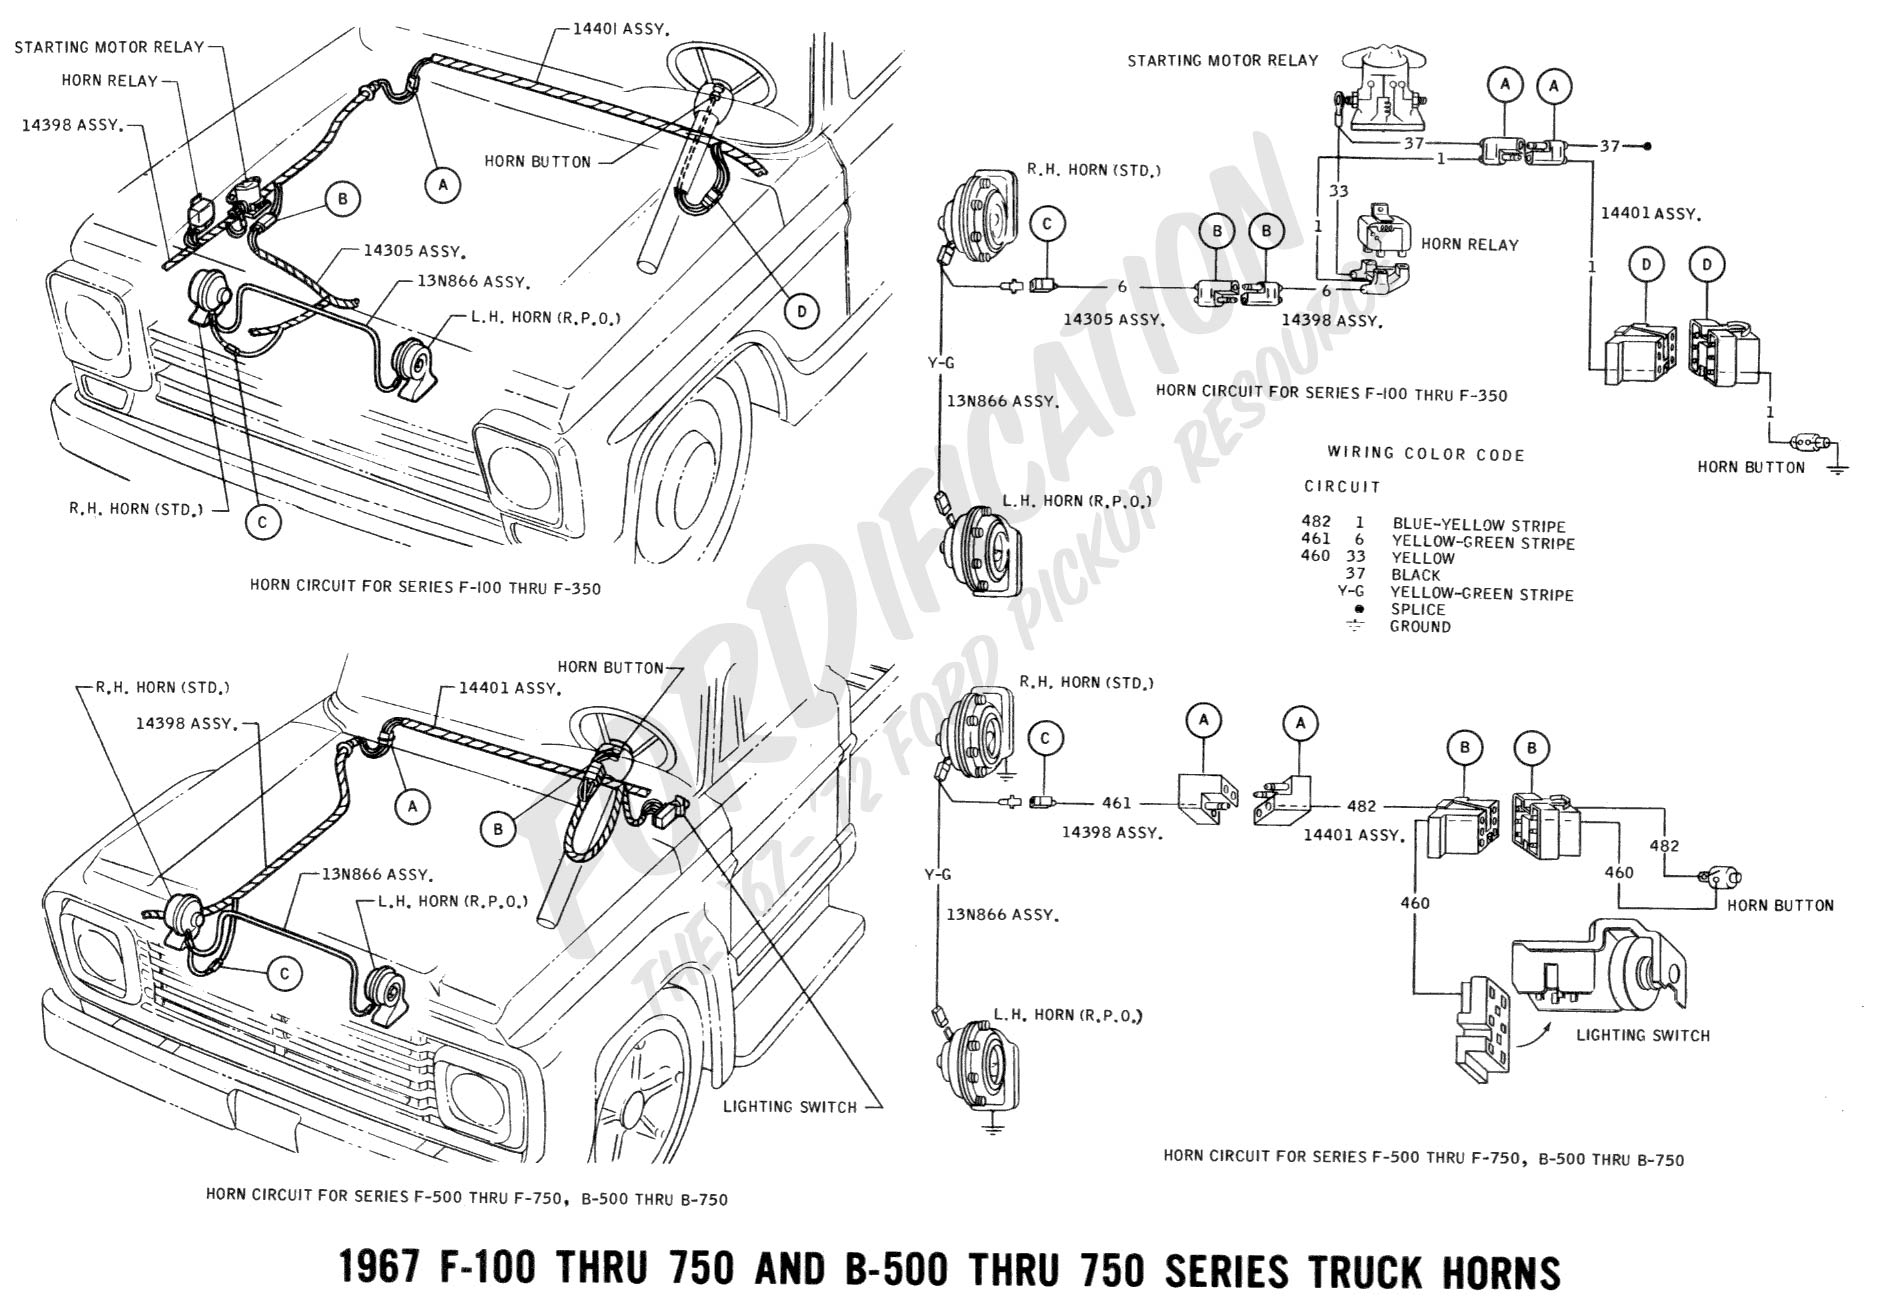 71 Maverick Turn Signal Wiring Diagram Libraries 70 Camaro Schematic 1973 Library1967 F100 Fuse Application U2022 1970